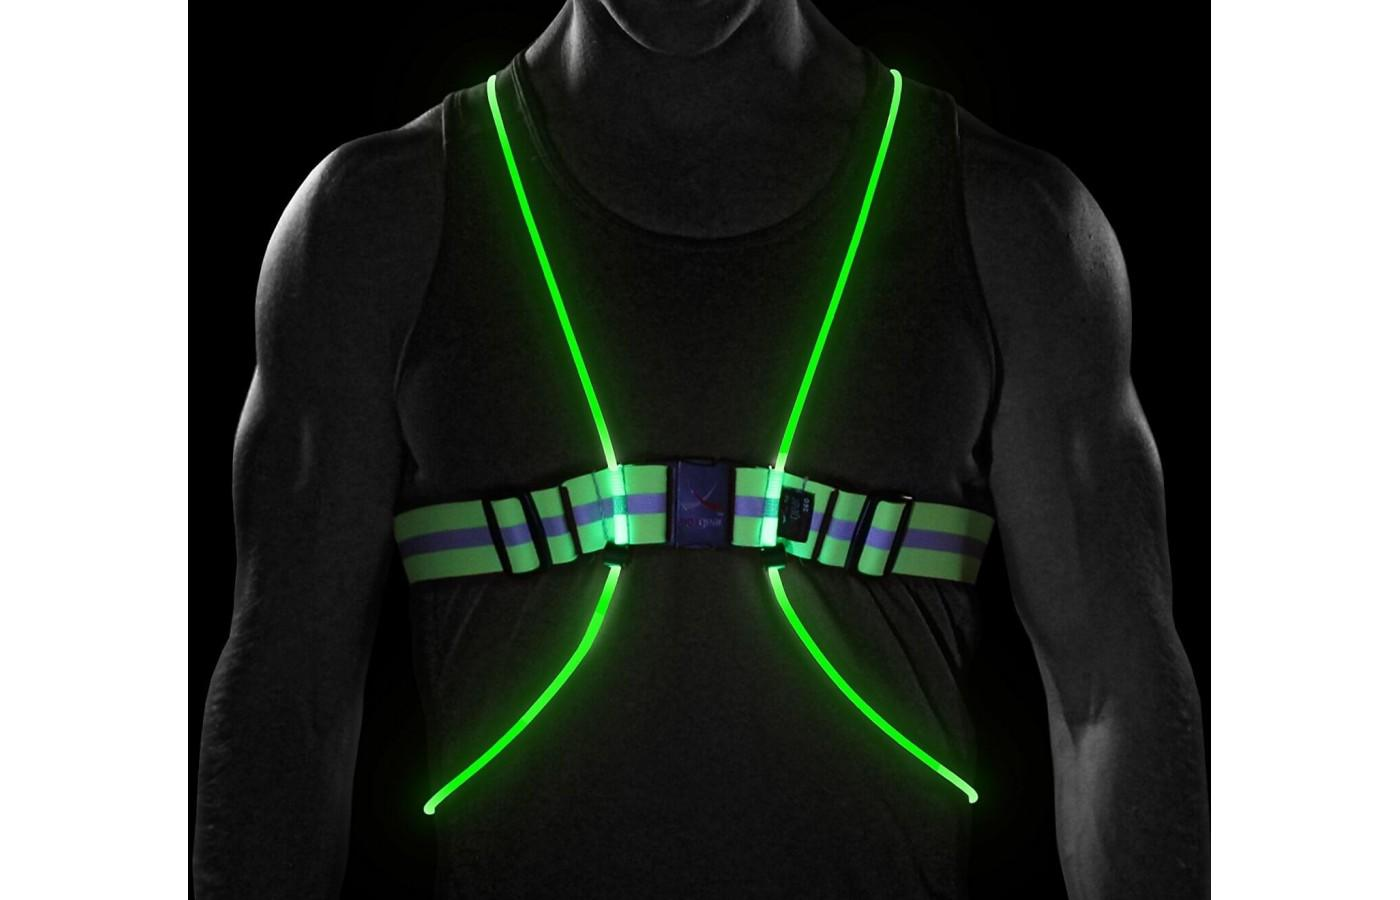 The vest is powered by 2 CREE LED bulbs that are electricity and heat free.